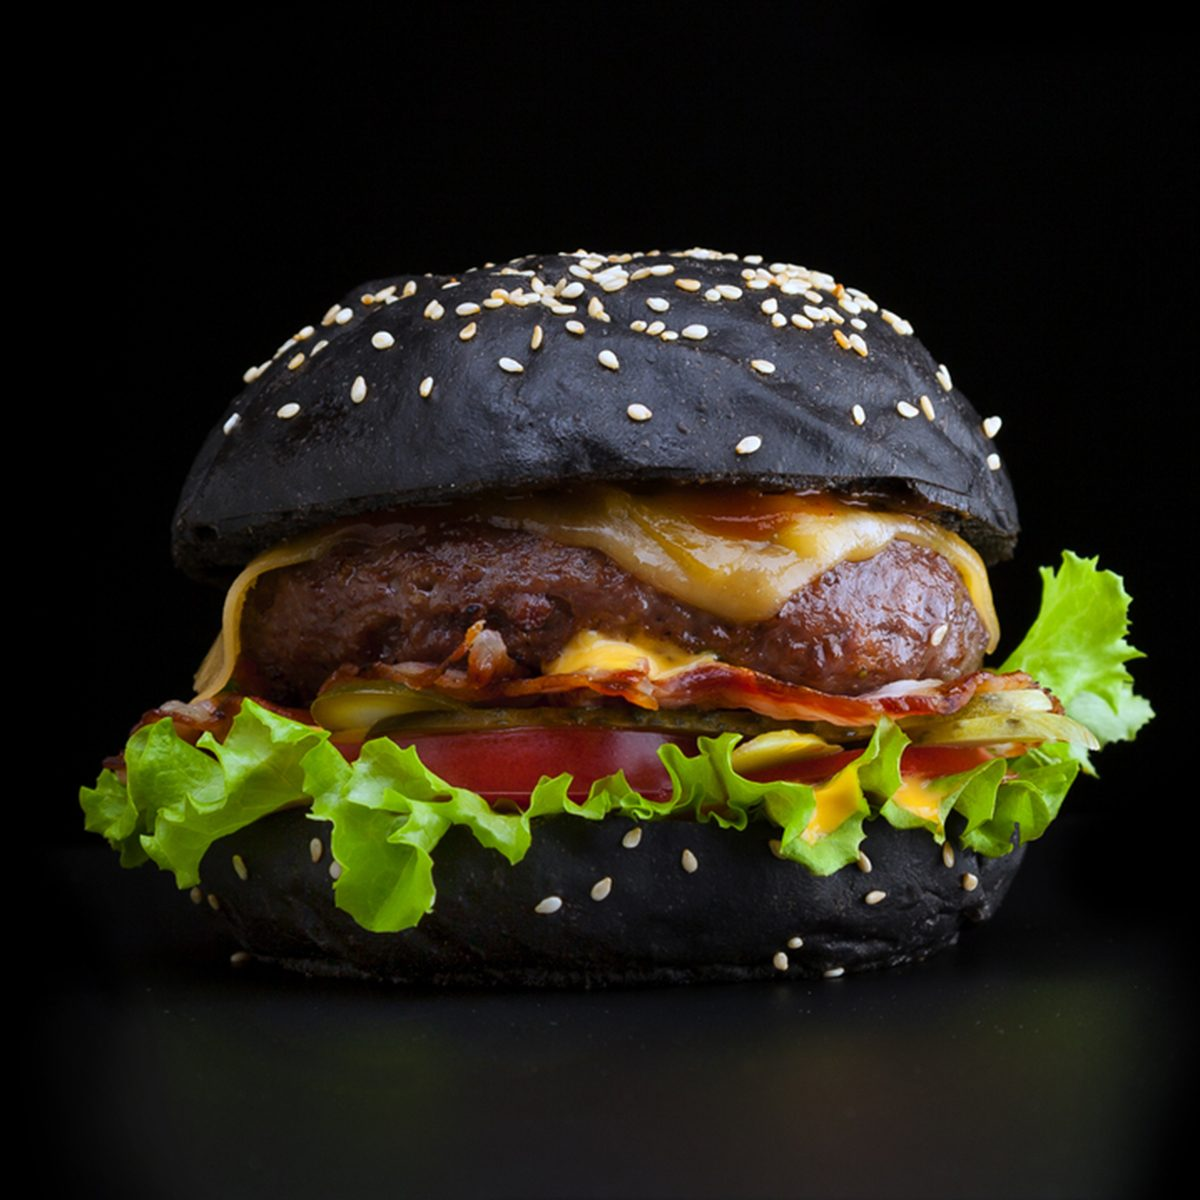 Tasty and appetizing hamburger isolated black with a black bun and bacon.